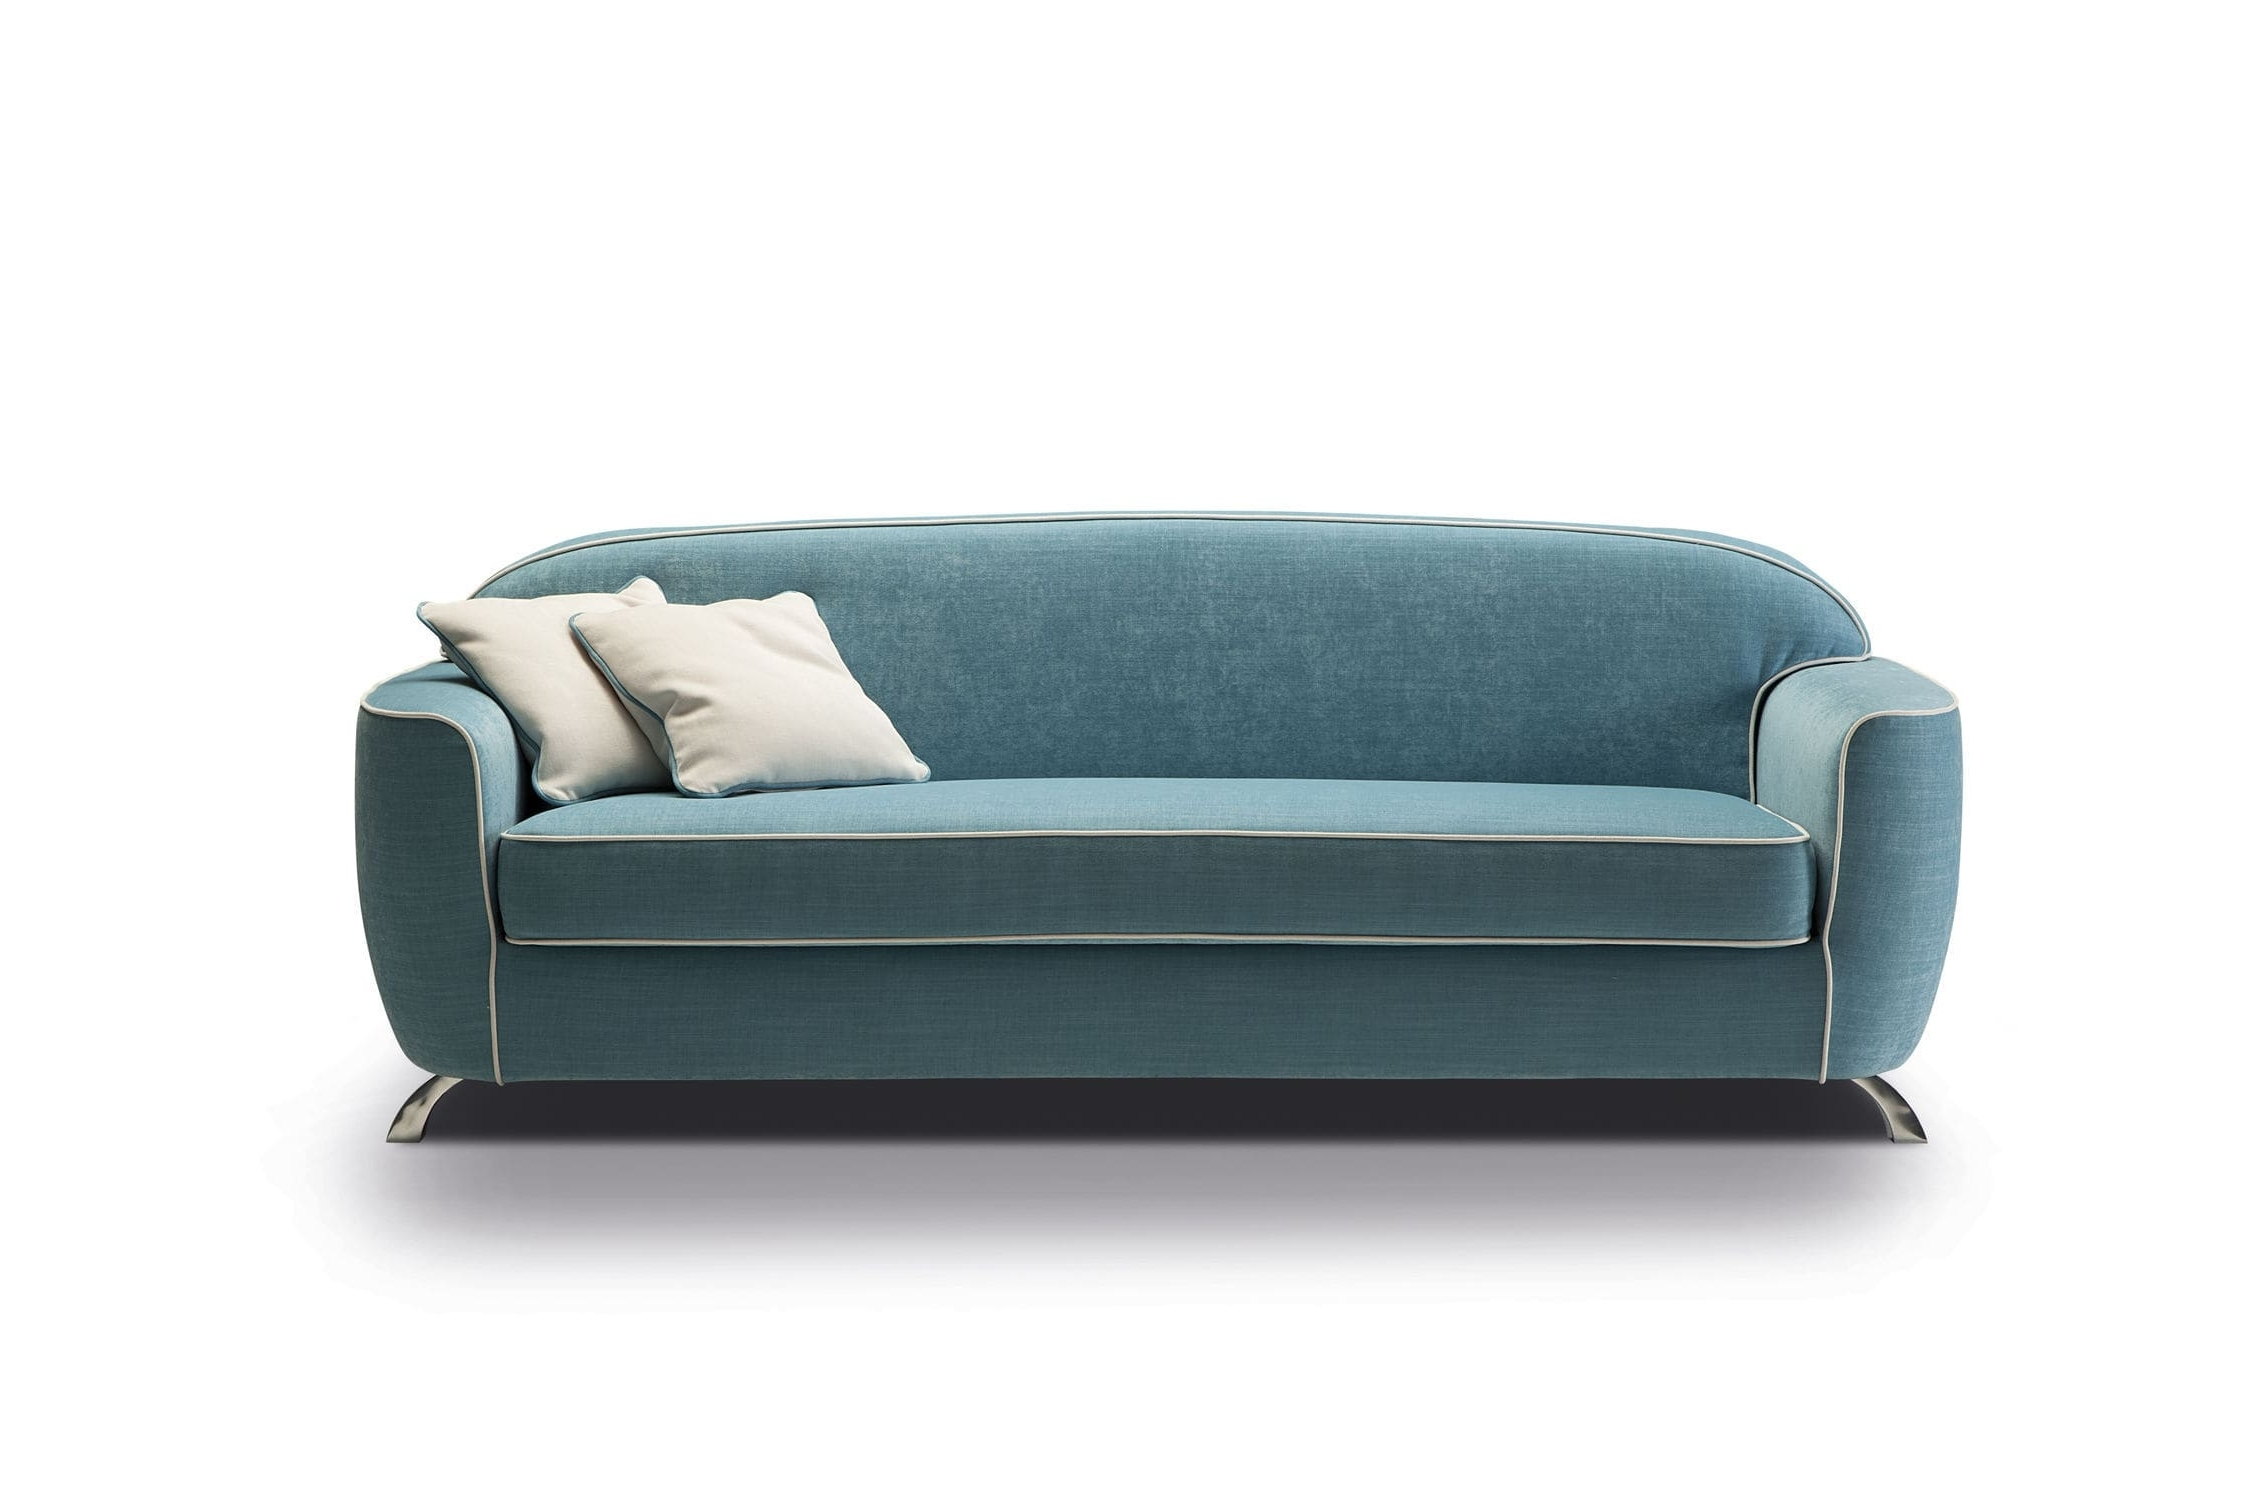 Washable Sofas Intended For Widely Used Sofa Bed / Contemporary / Fabric / With Washable Removable Cover (View 13 of 15)